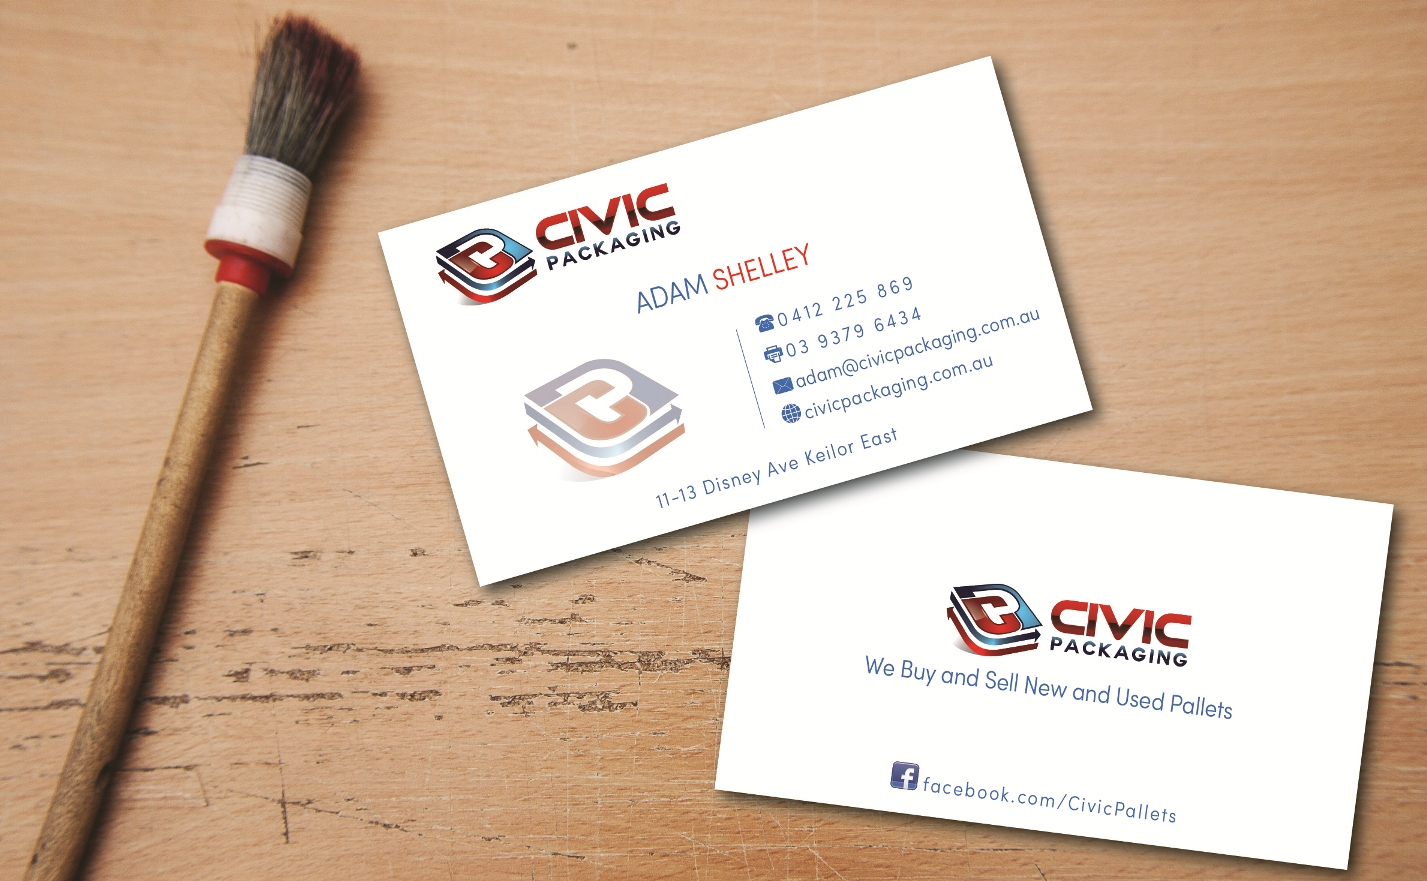 Elegant playful business business card design for civic packaging business card design by mt for civic packaging design 1637206 colourmoves